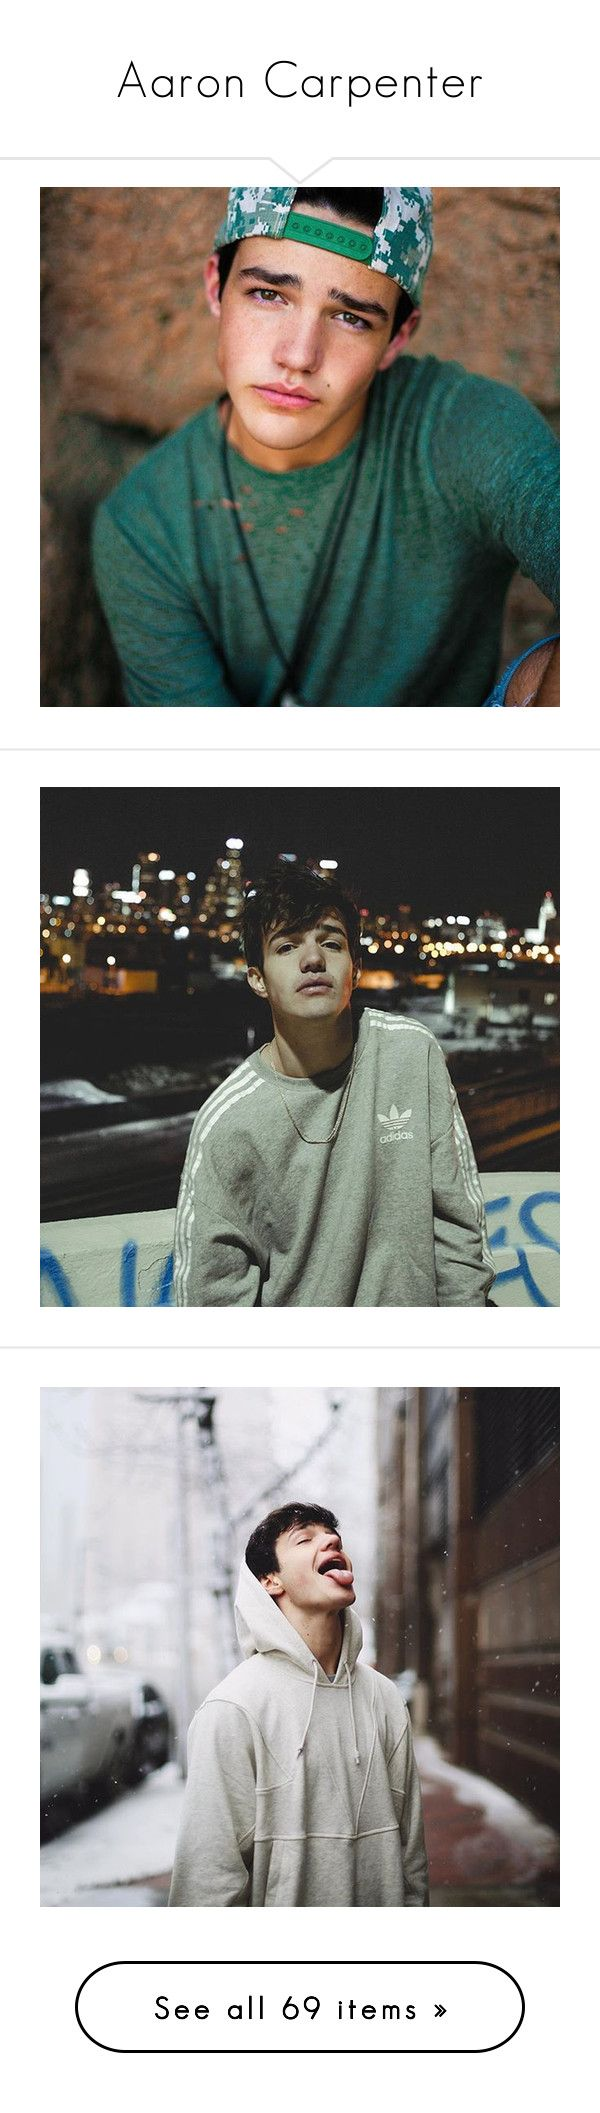 """Aaron Carpenter"" by beingmyselfaf on Polyvore featuring magcon, magconboys, Aaroncarpenter, aaron carpenter, aaron, pictures, boys, ppl, people y magcon boys"